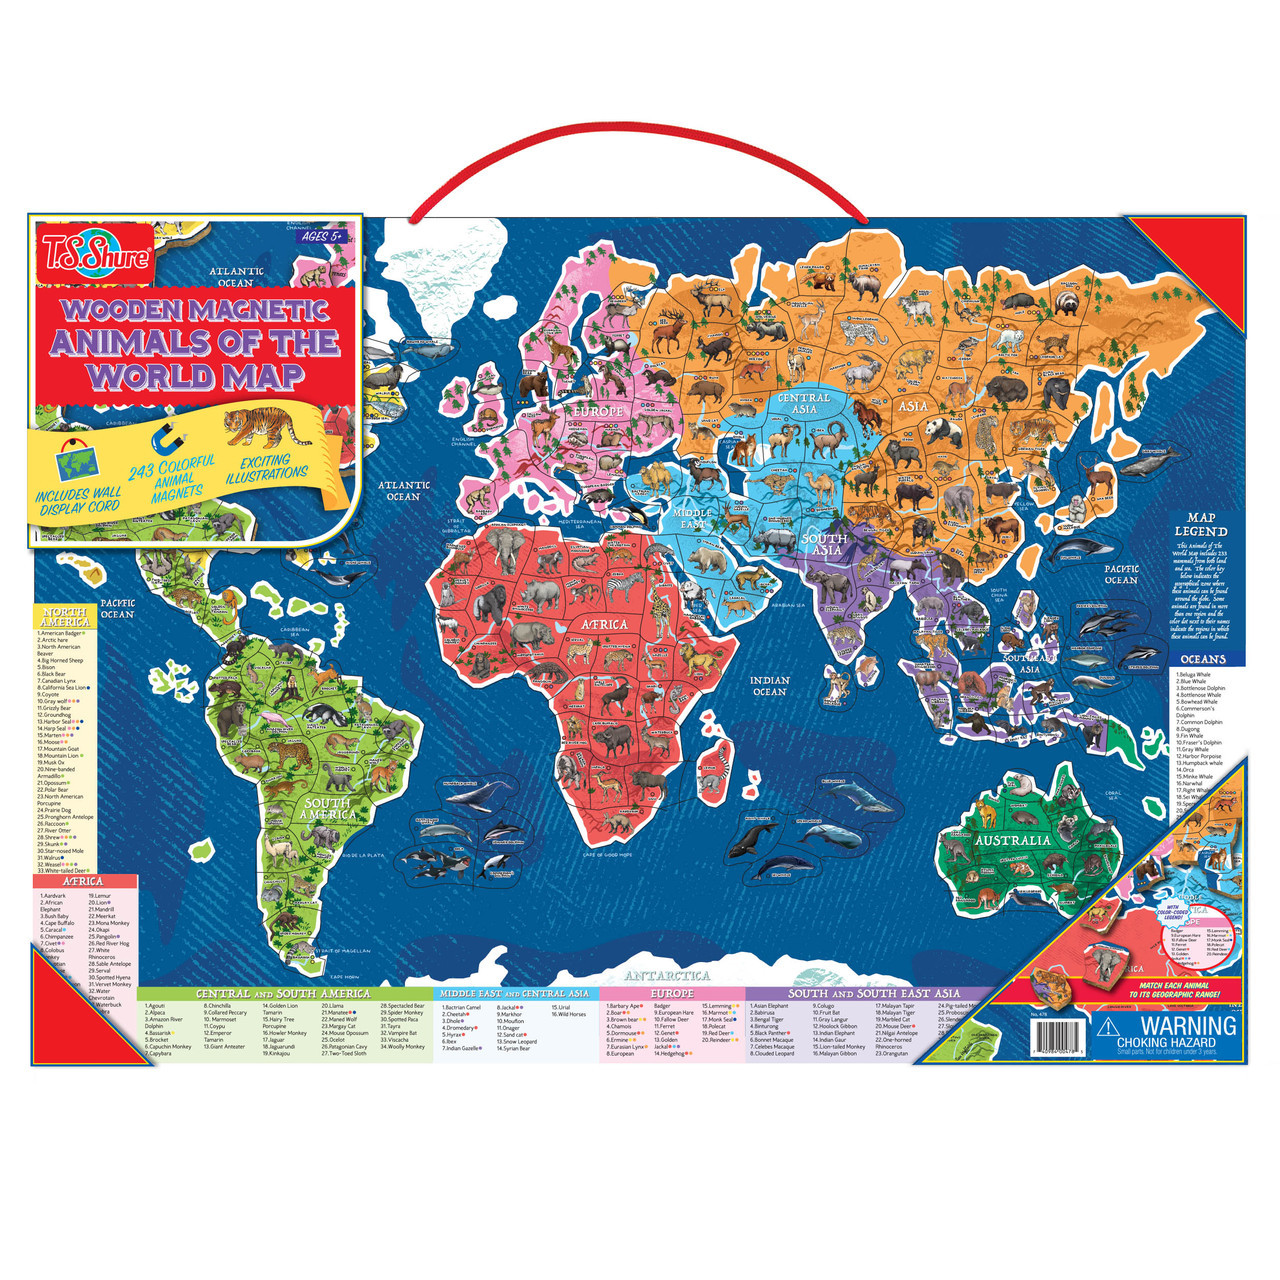 Wooden Magnetic Animals Of The World Map Puzzle T S Shure